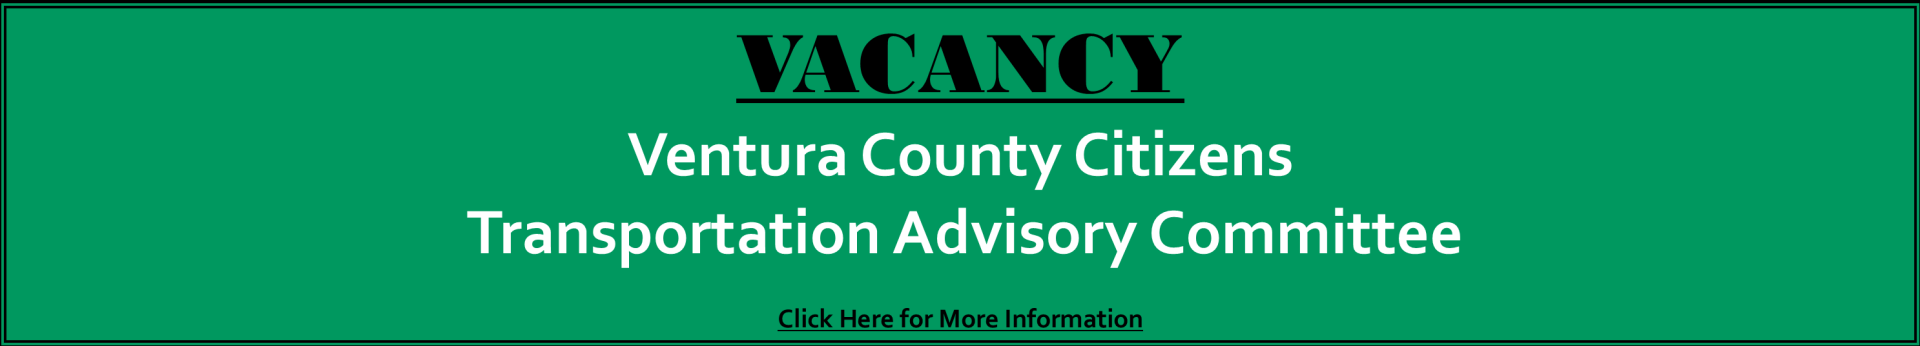 VCCTAC vacancy notice banner version B_111318-2